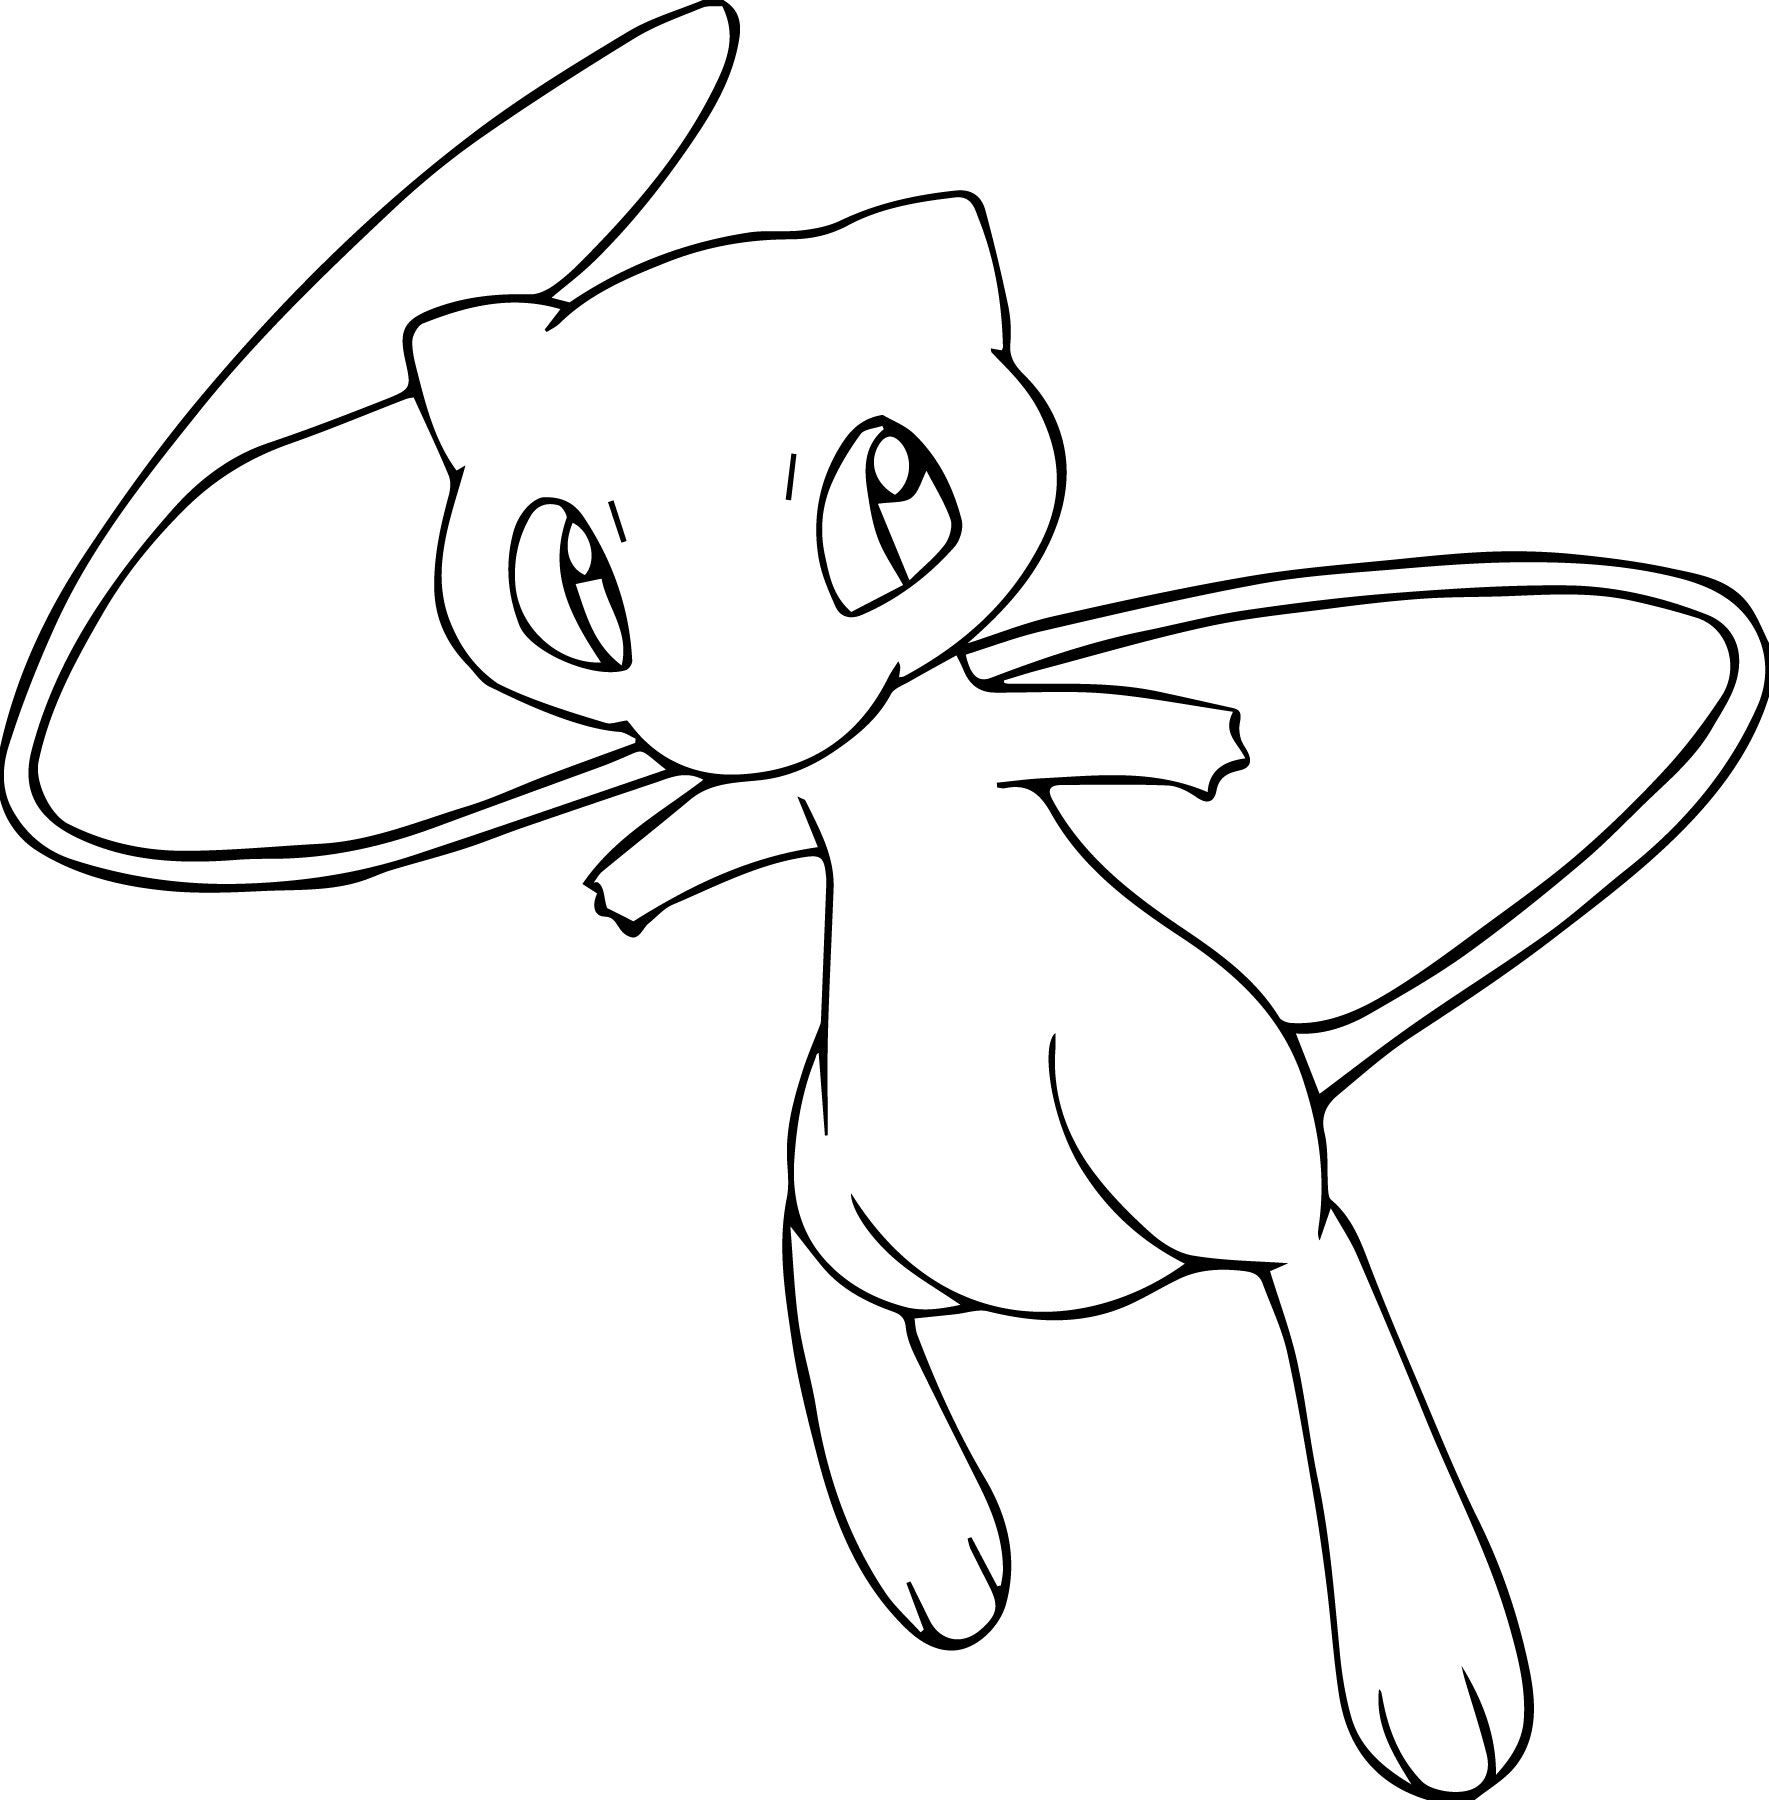 Mew Coloring Page (With images) Pokemon coloring pages